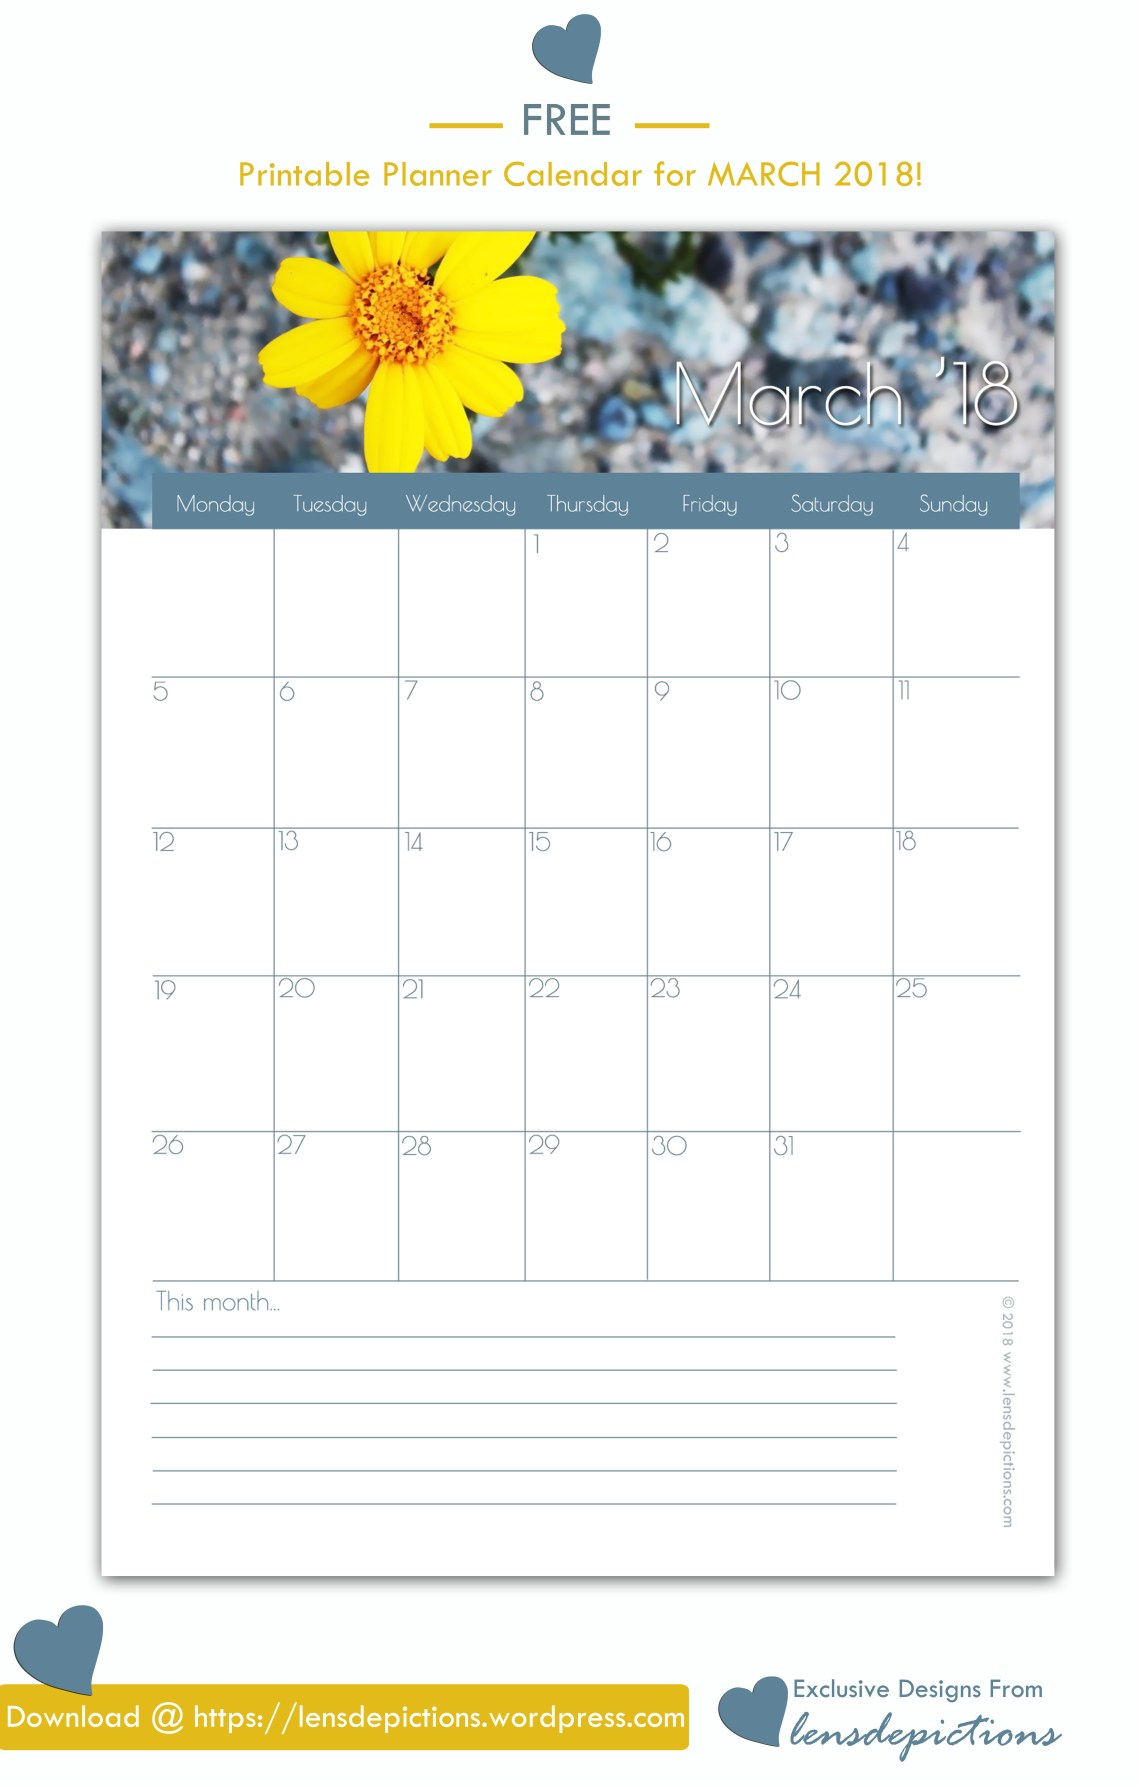 PrintableMonthlyCalendar_Banner_March2018